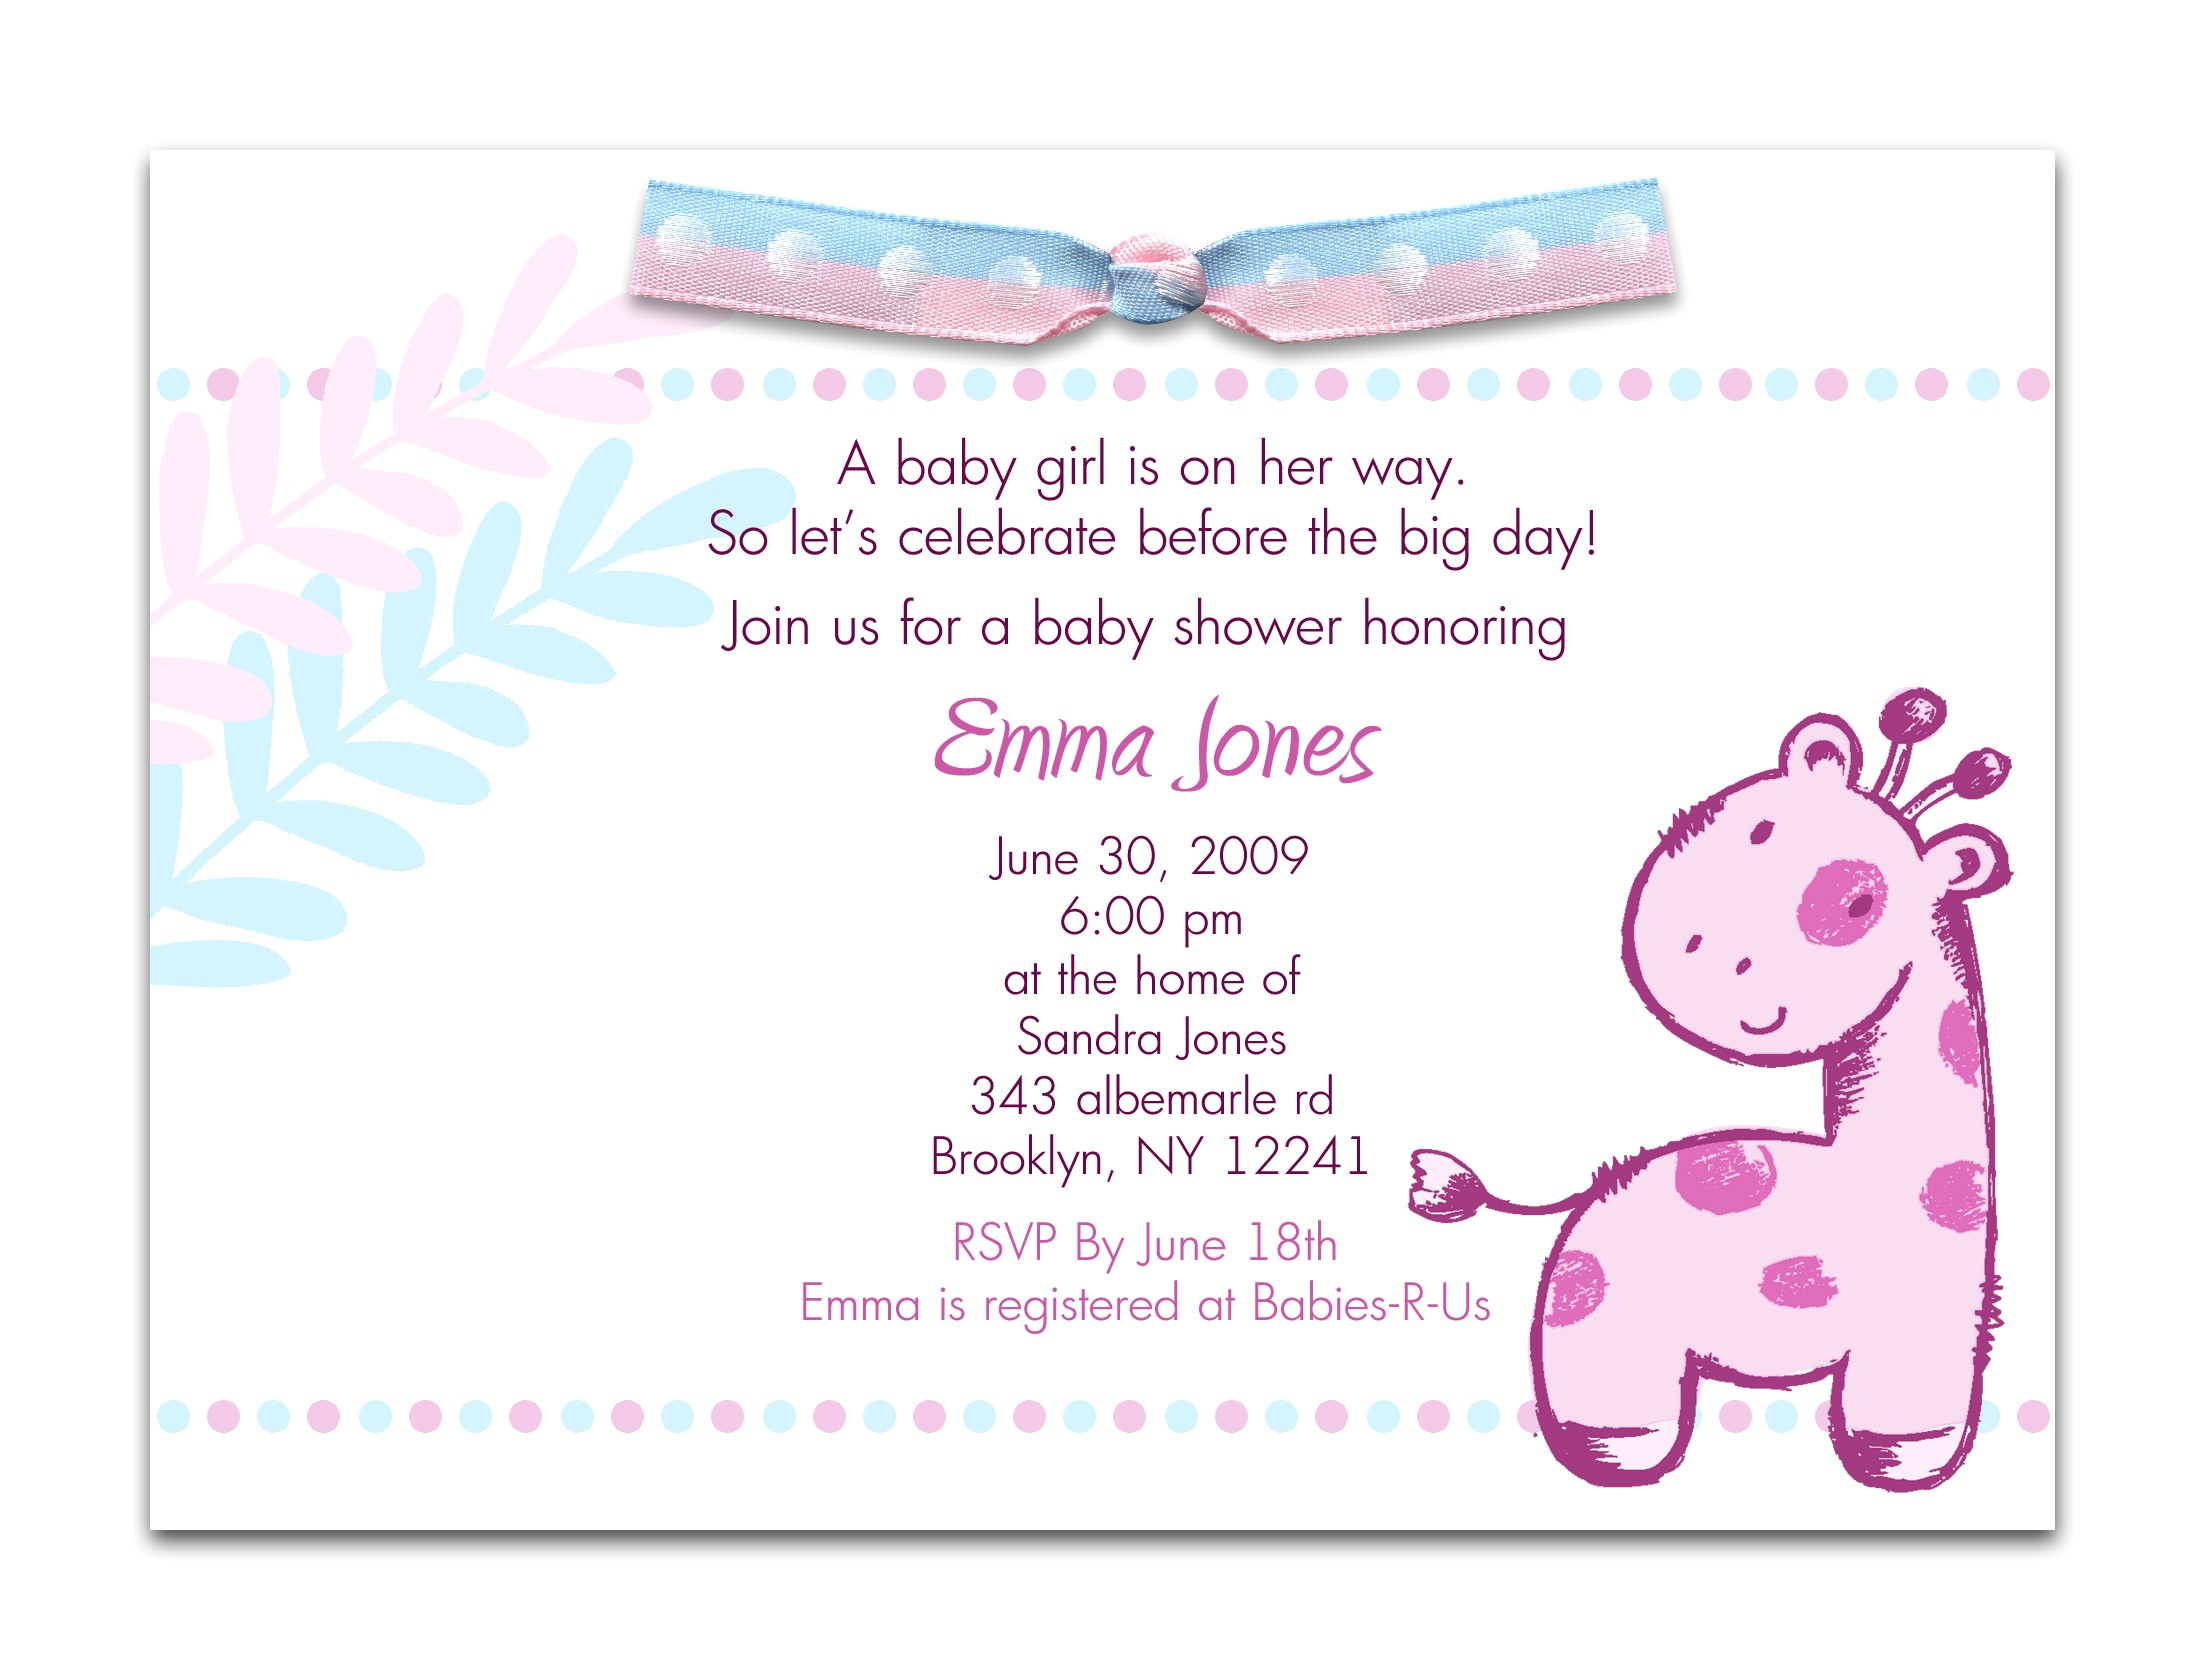 Sayings for Baby Shower Invites Baby Shower Invitation Wording for A Girl theruntime Com